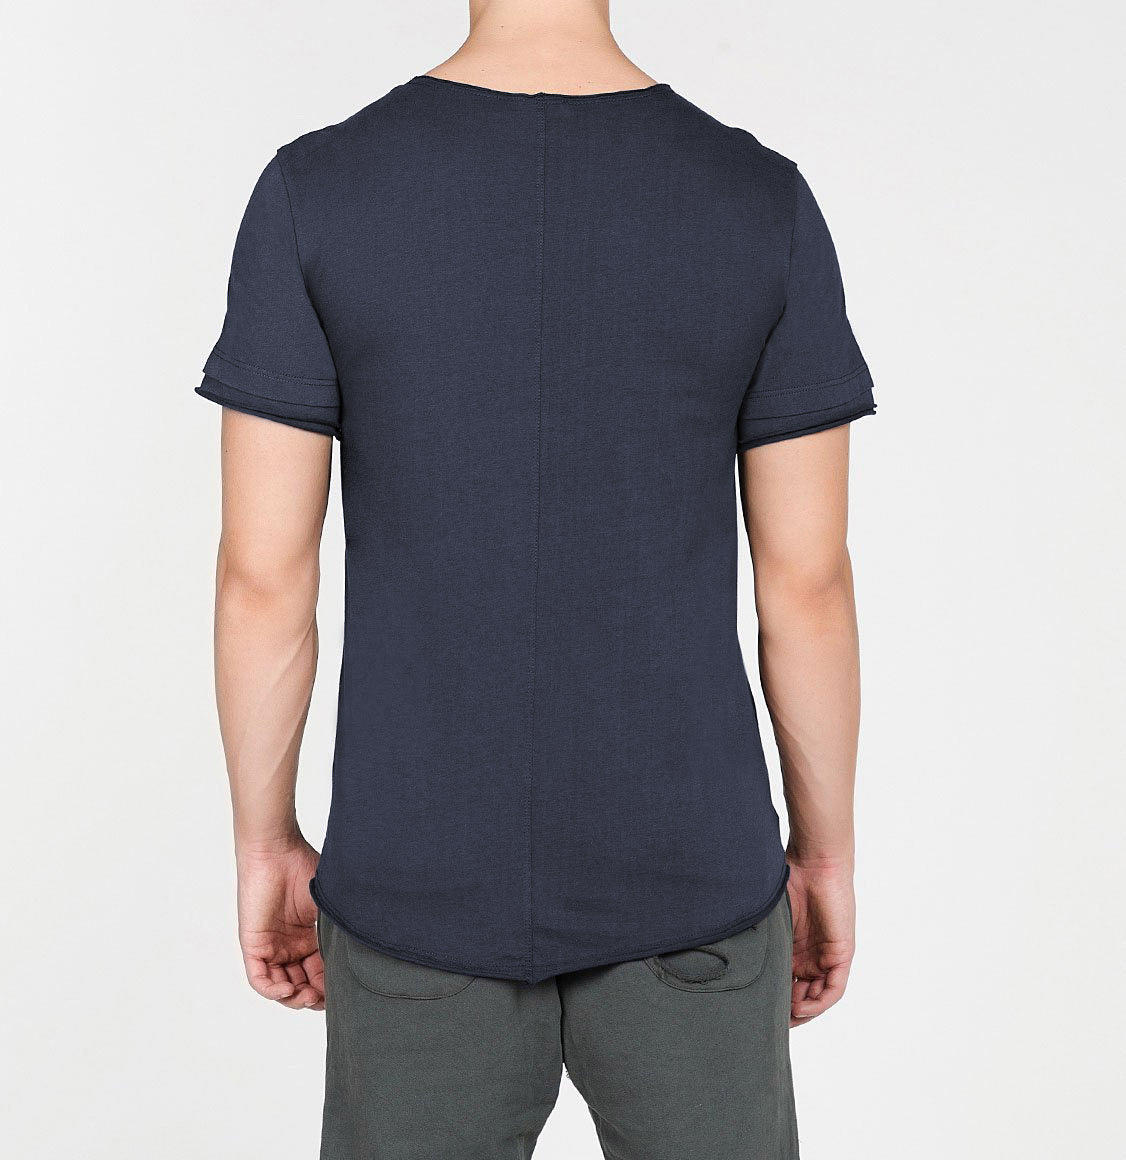 Organic Cotton Crew Neck Garment Dyed T-shirt Slate Blue | The Project Garments - C